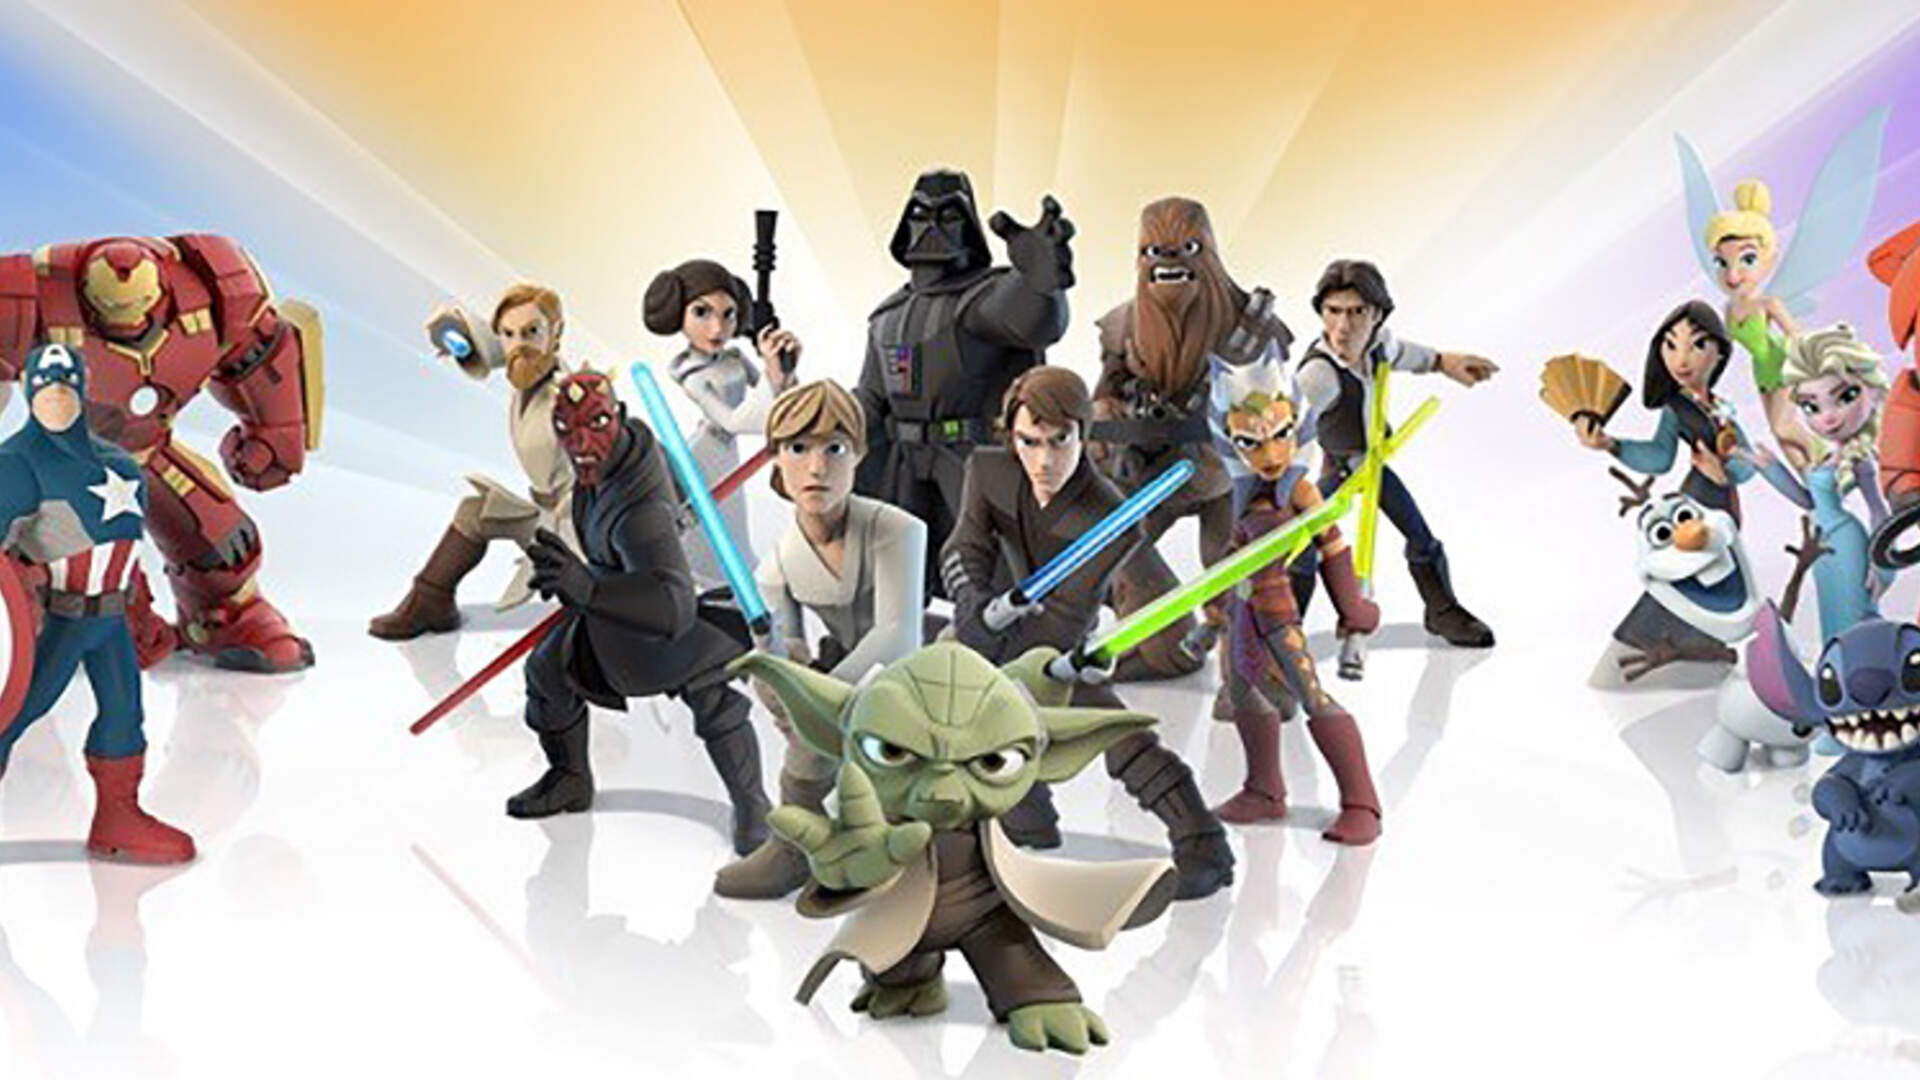 Disney Infinity Online Shutting Down, PC and Mobile Versions Will Be Unplayable